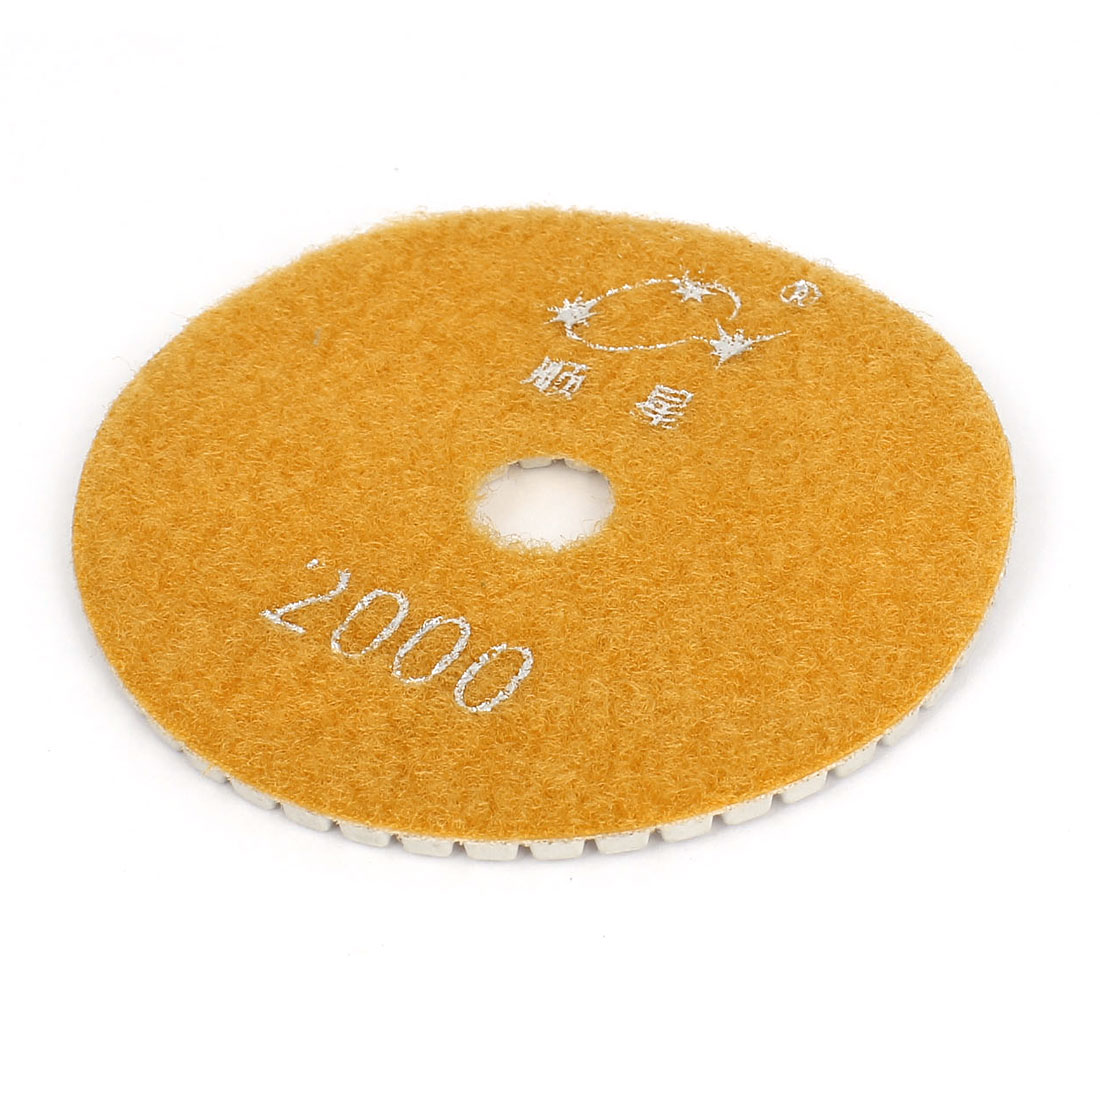 100mmx16mmx4mm Diamond Polishing Wet Pad 2000 Grit for Granite Concrete Stone